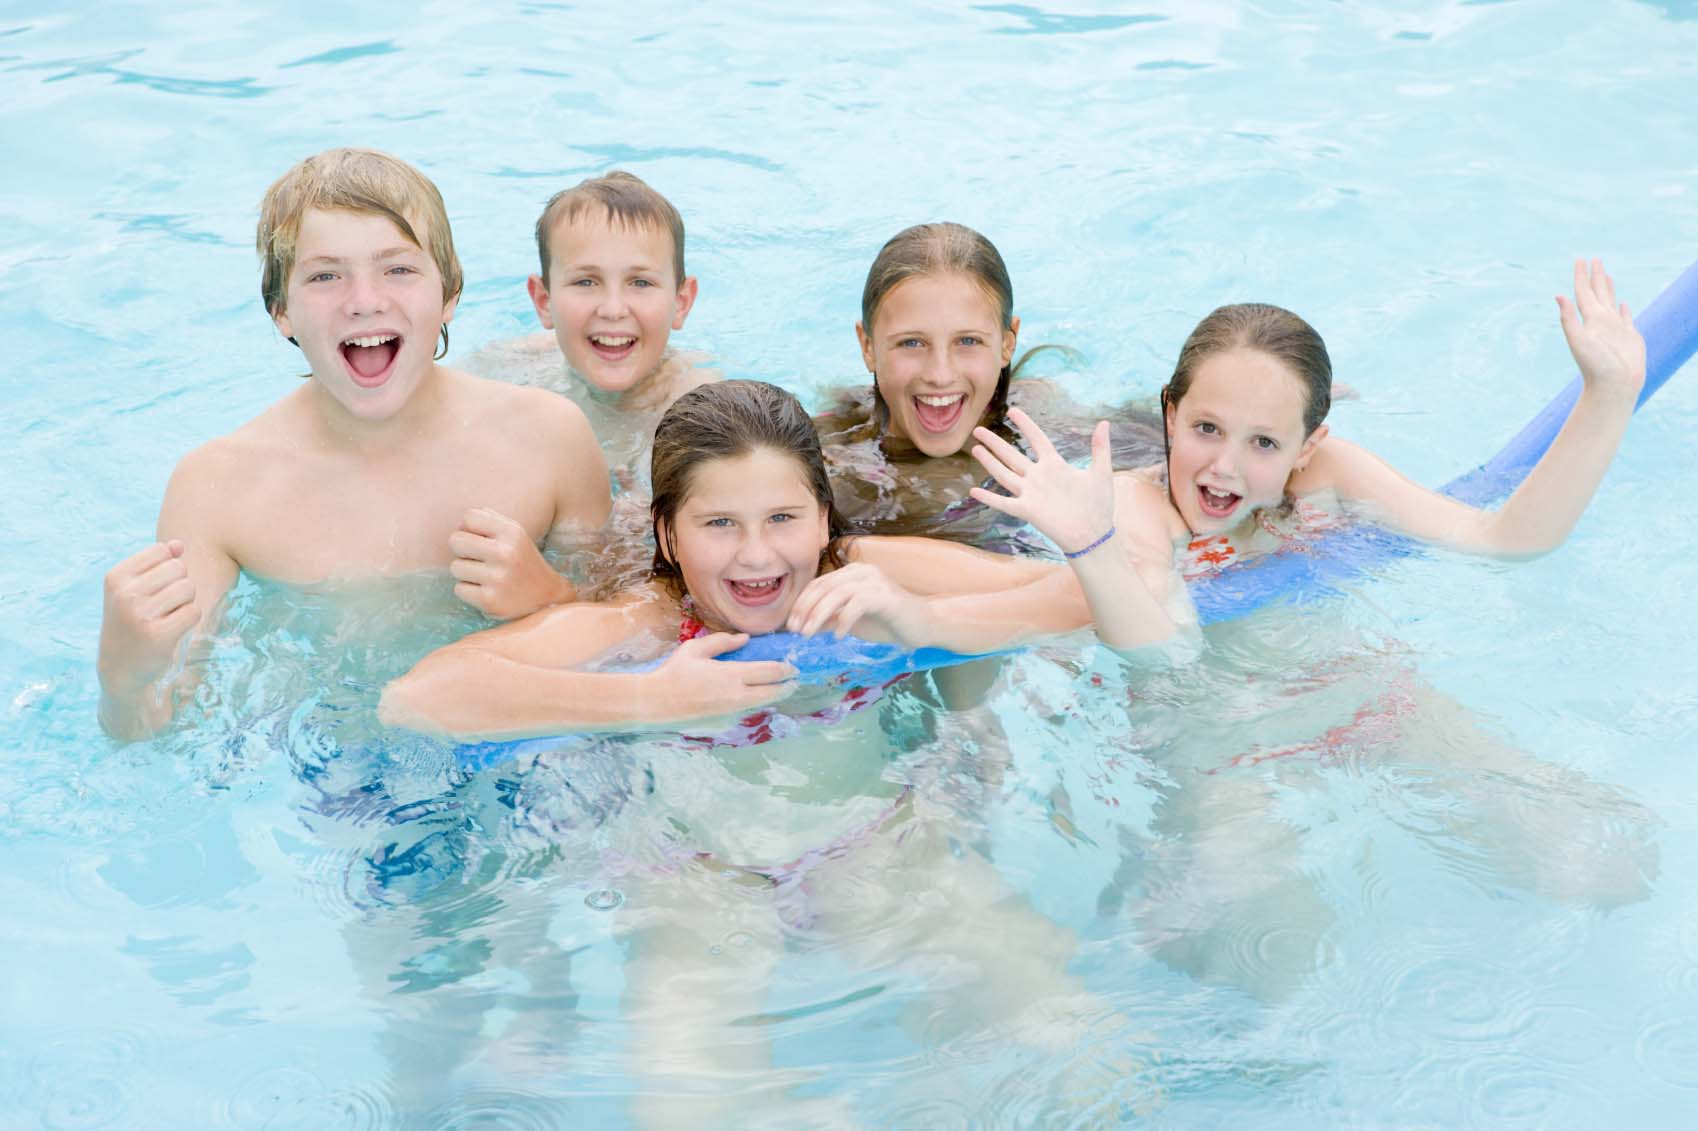 Kids with noodles smiling and laughing in pool